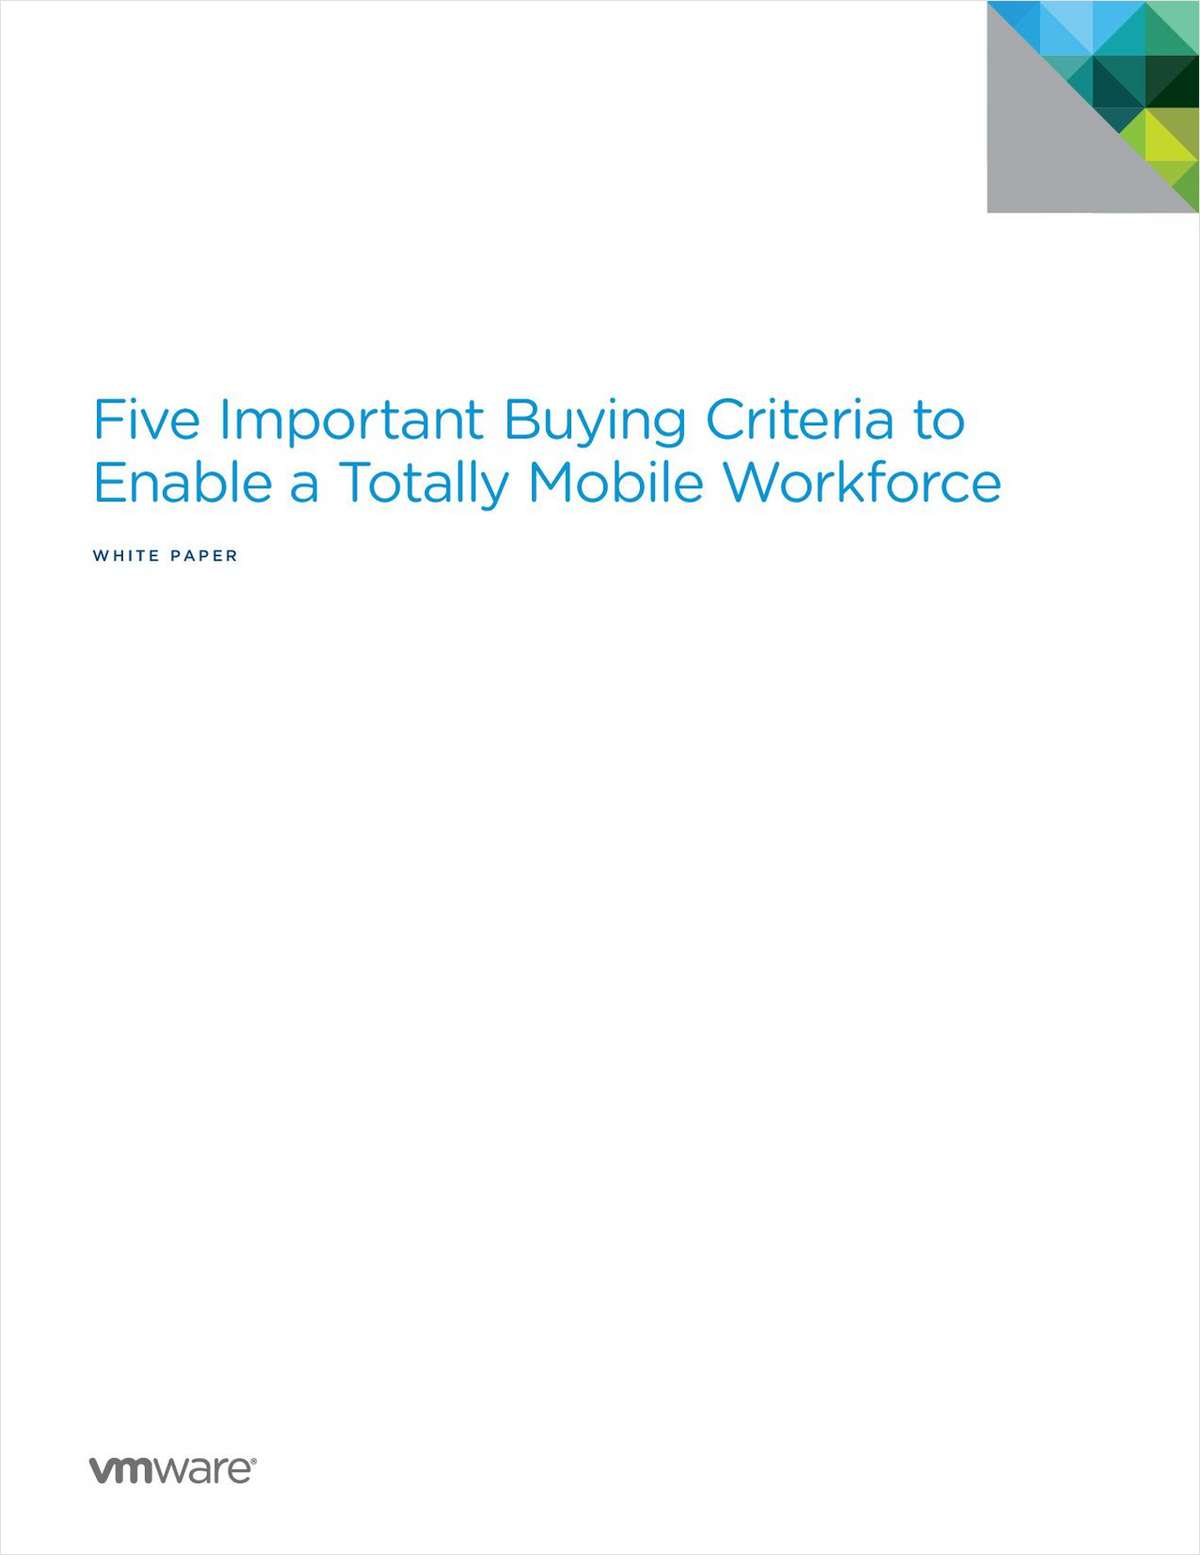 Five Important Buying Criteria to Enable a Totally Mobile Workforce